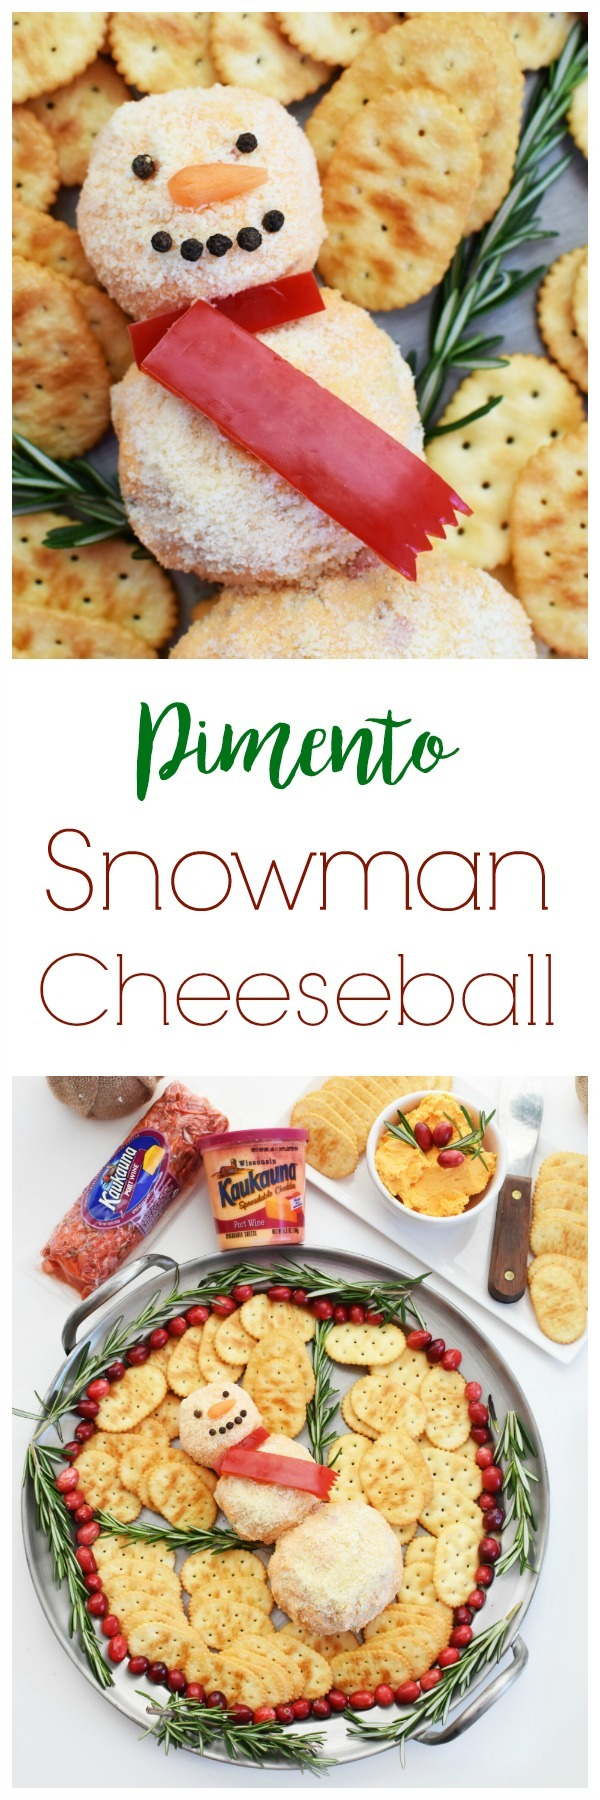 Pimento Snowman Cheese Ball Recipe